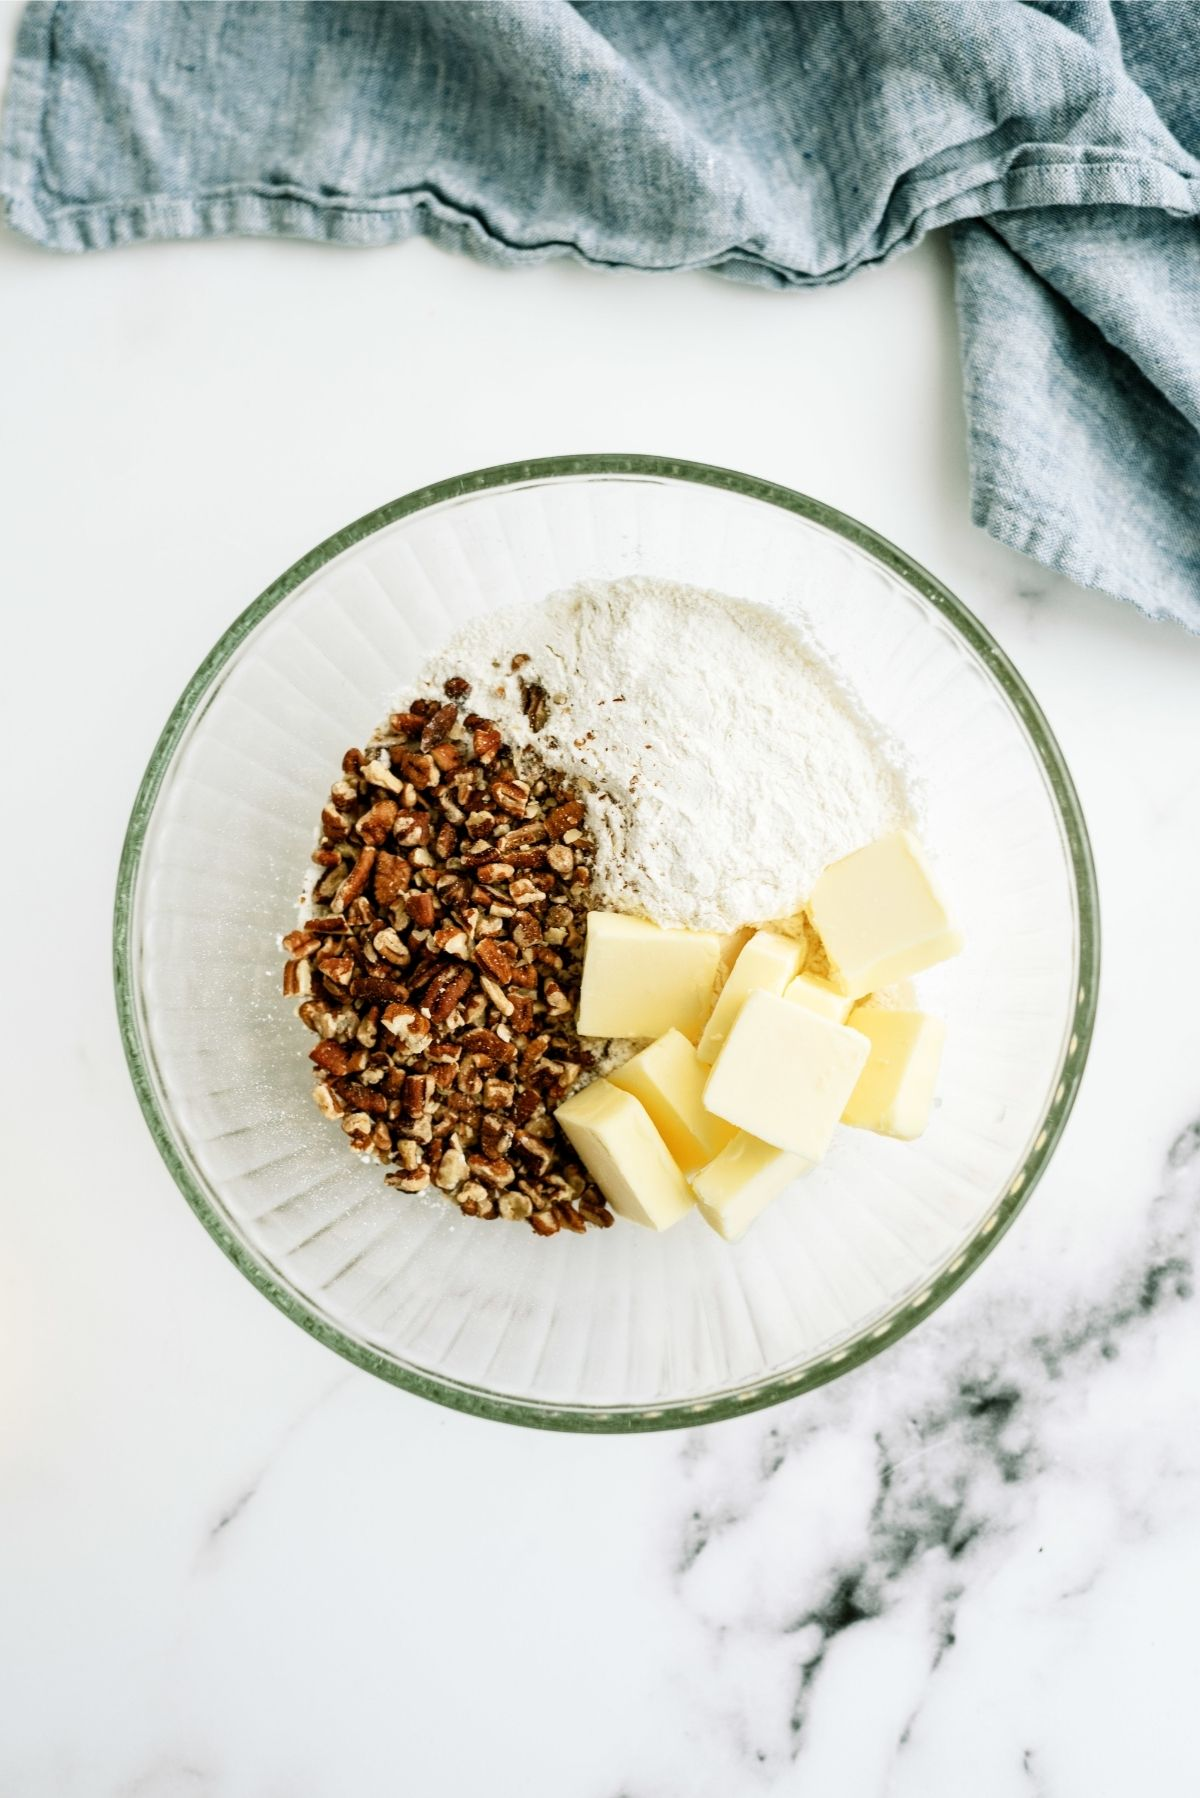 medium-sized mixing bowl with flour, ½ of the chopped pecans, and the softened butter